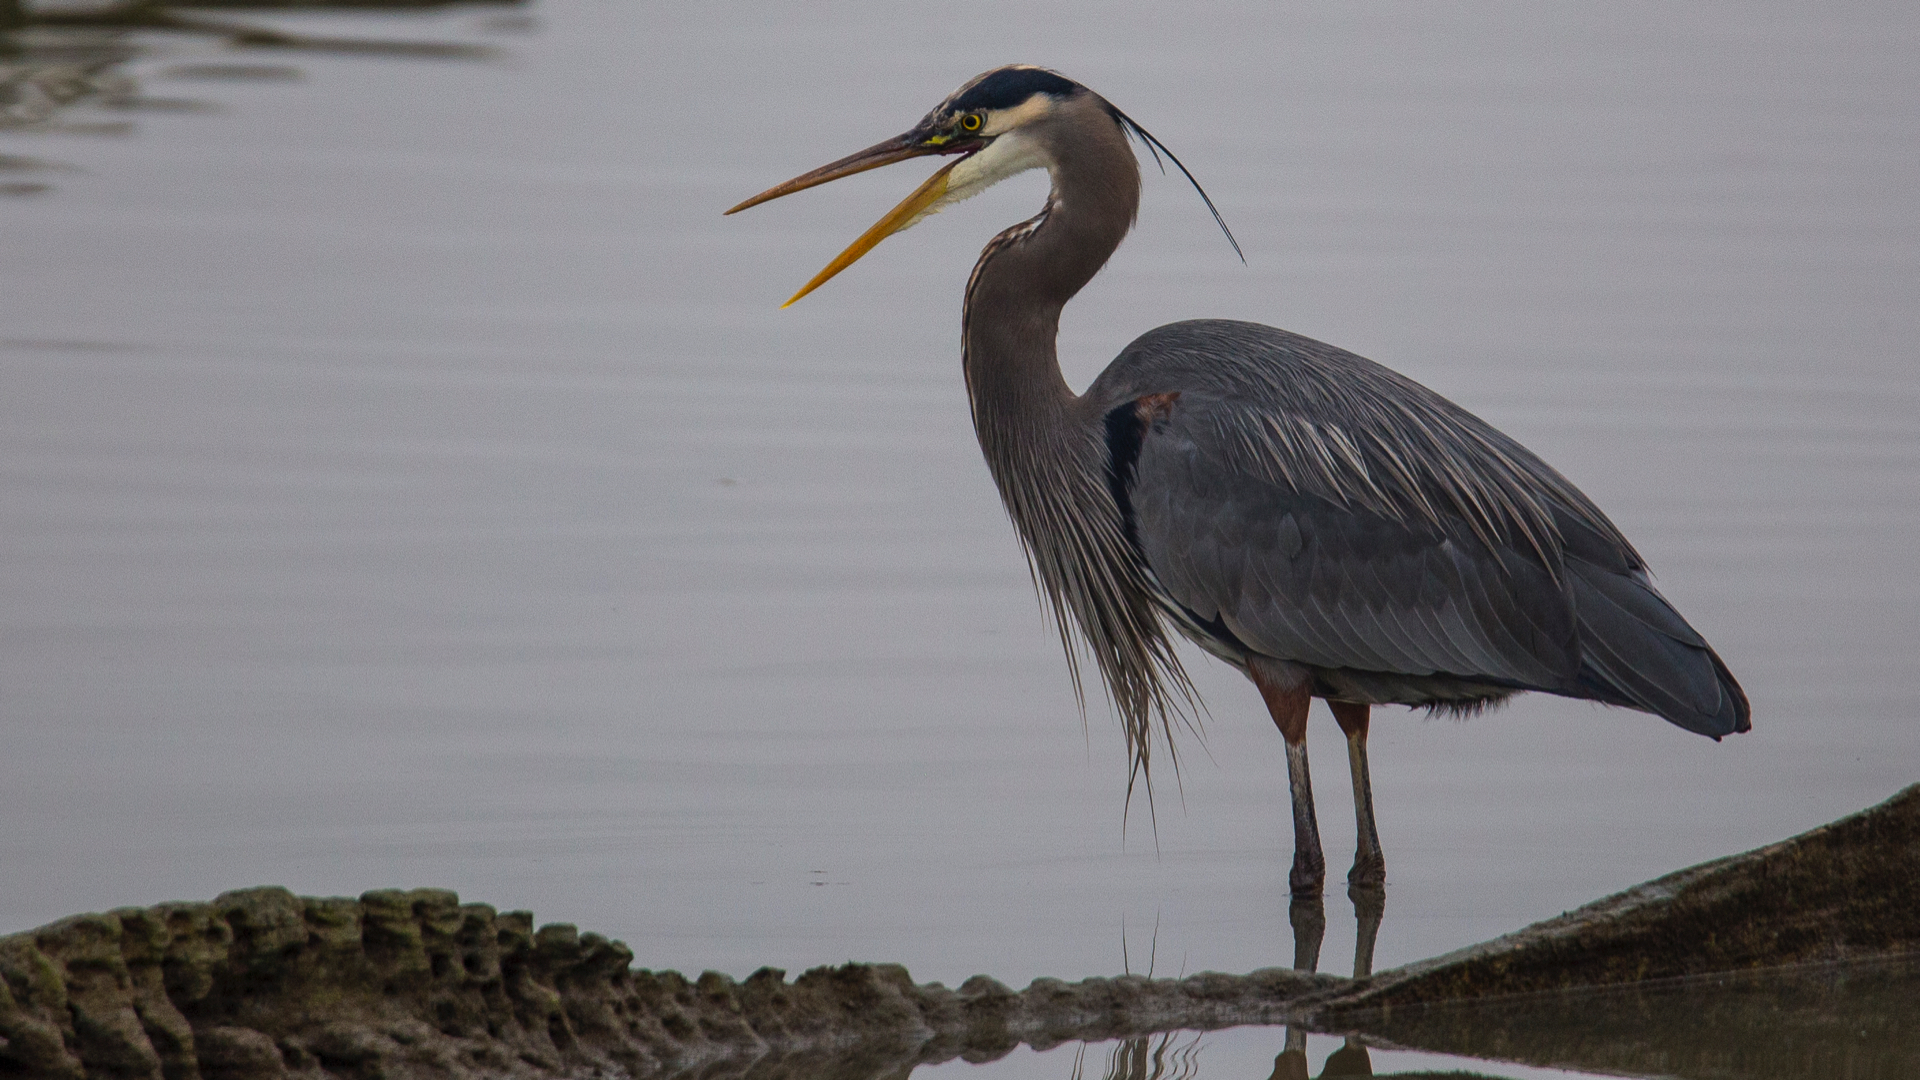 The great blue herons seemed to be having some luck fishing.